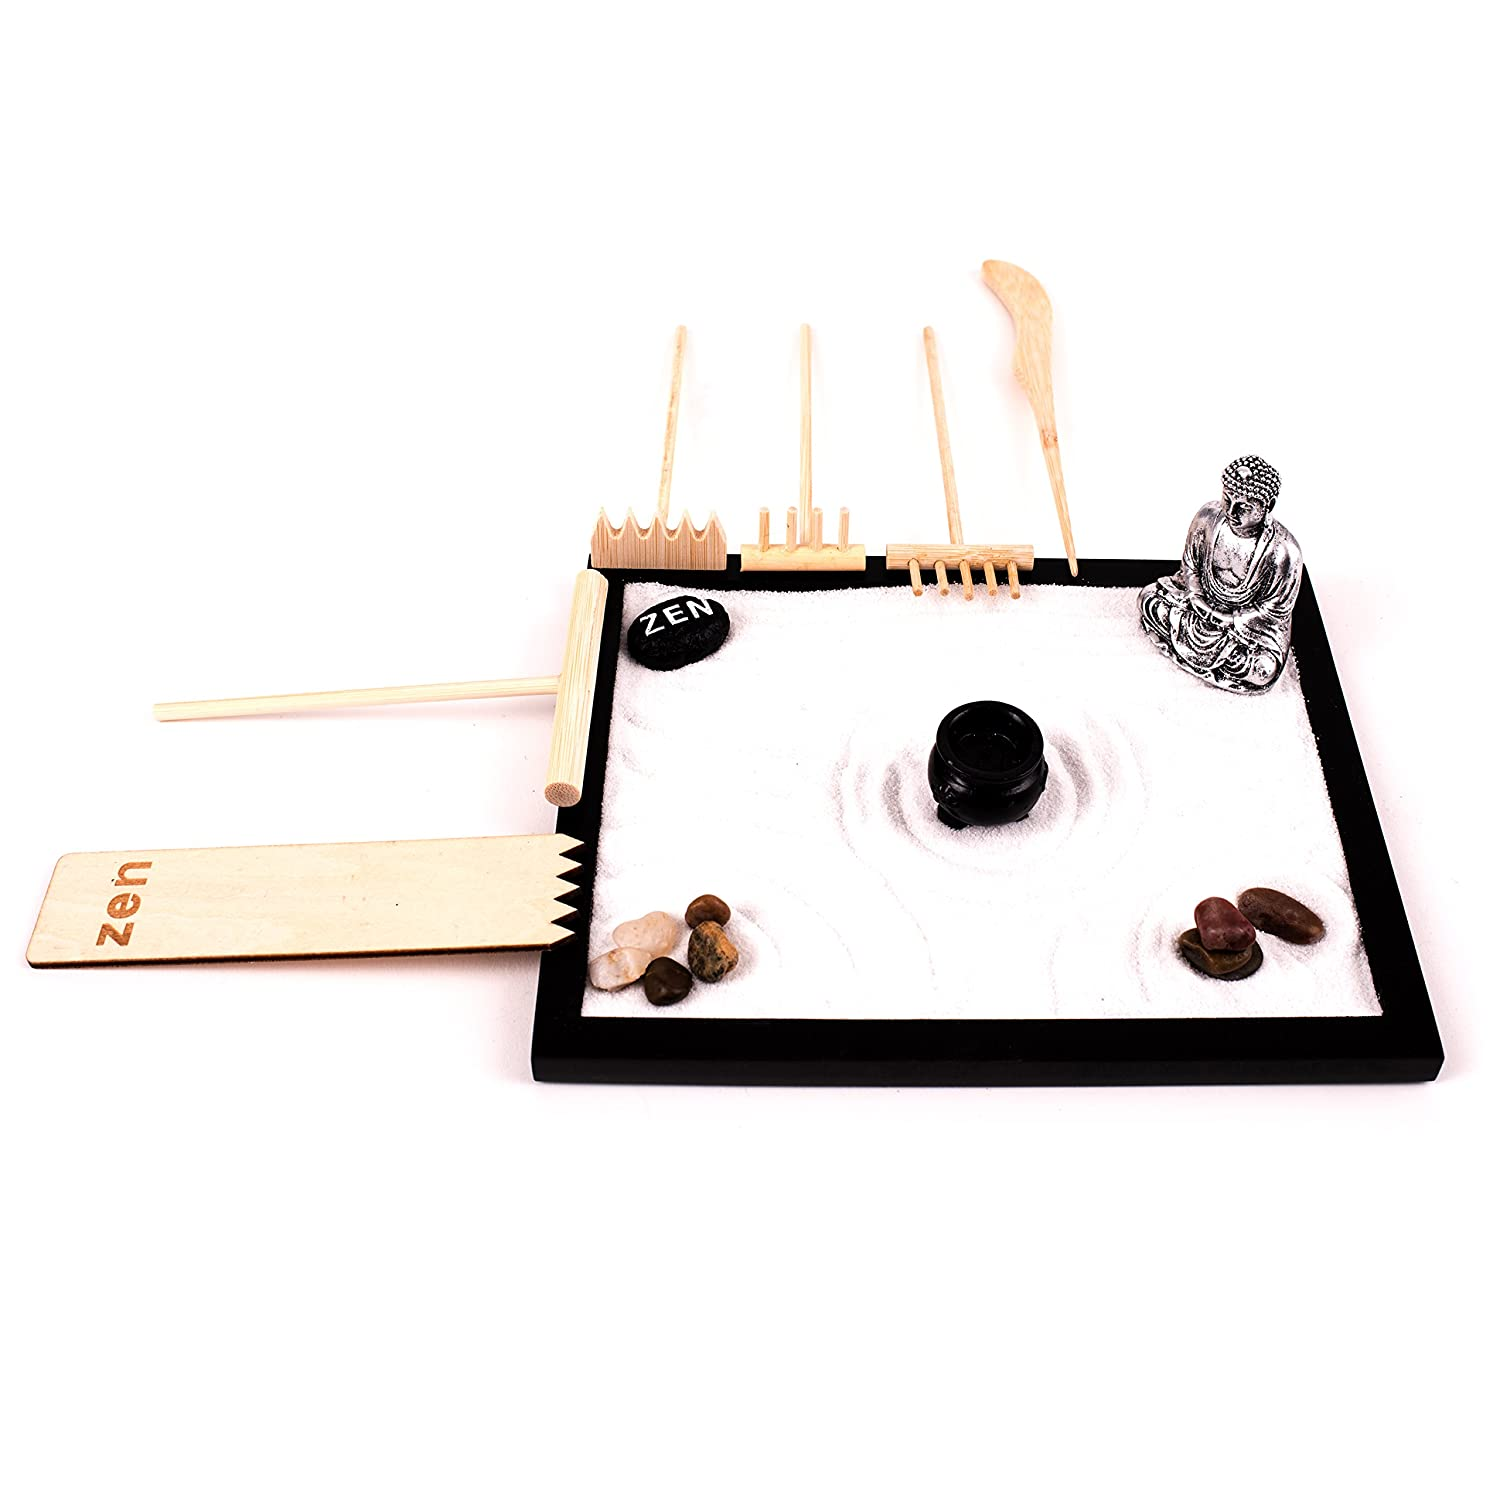 Deluxe Wooden Zen Sand Garden with 6 Types of Rakes, 2 Meditation Figurines, Sand and Rocks (Model# RG-003)